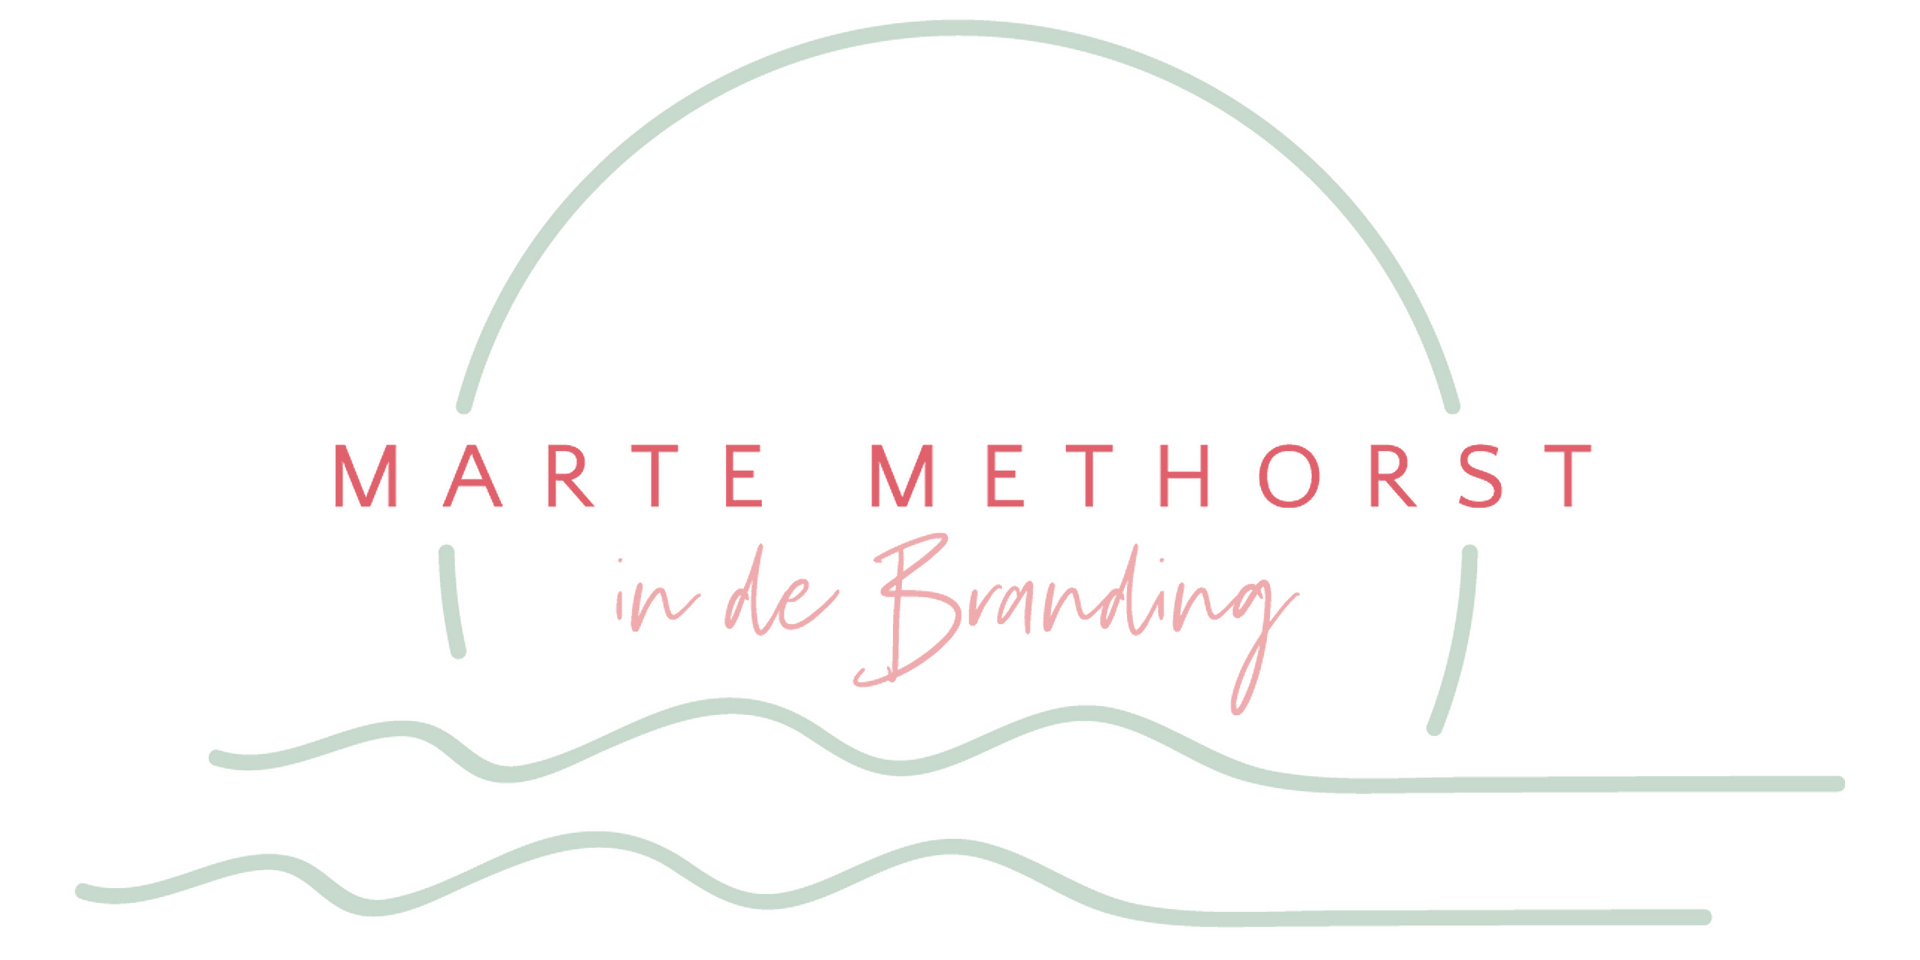 BRAND AGENCY MARTE METHORST